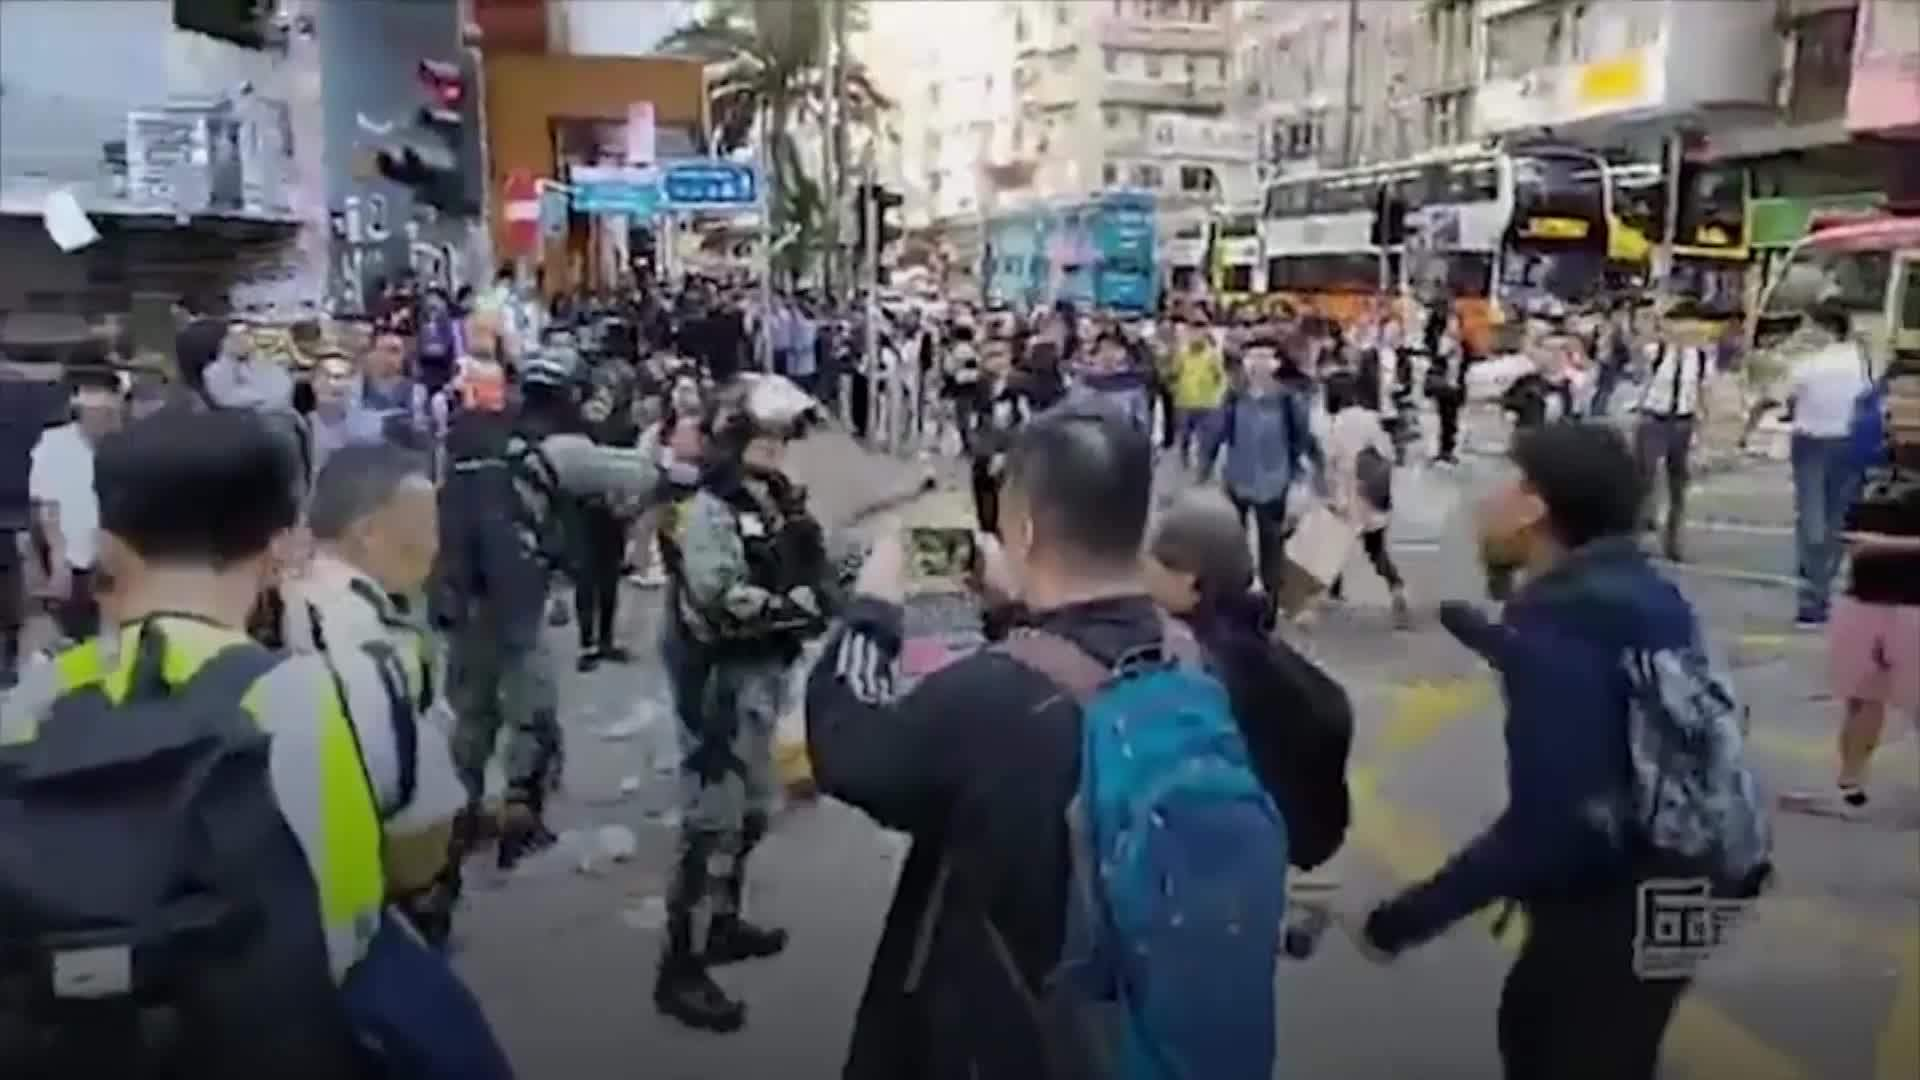 Police appear to shoot protester in Hong Kong